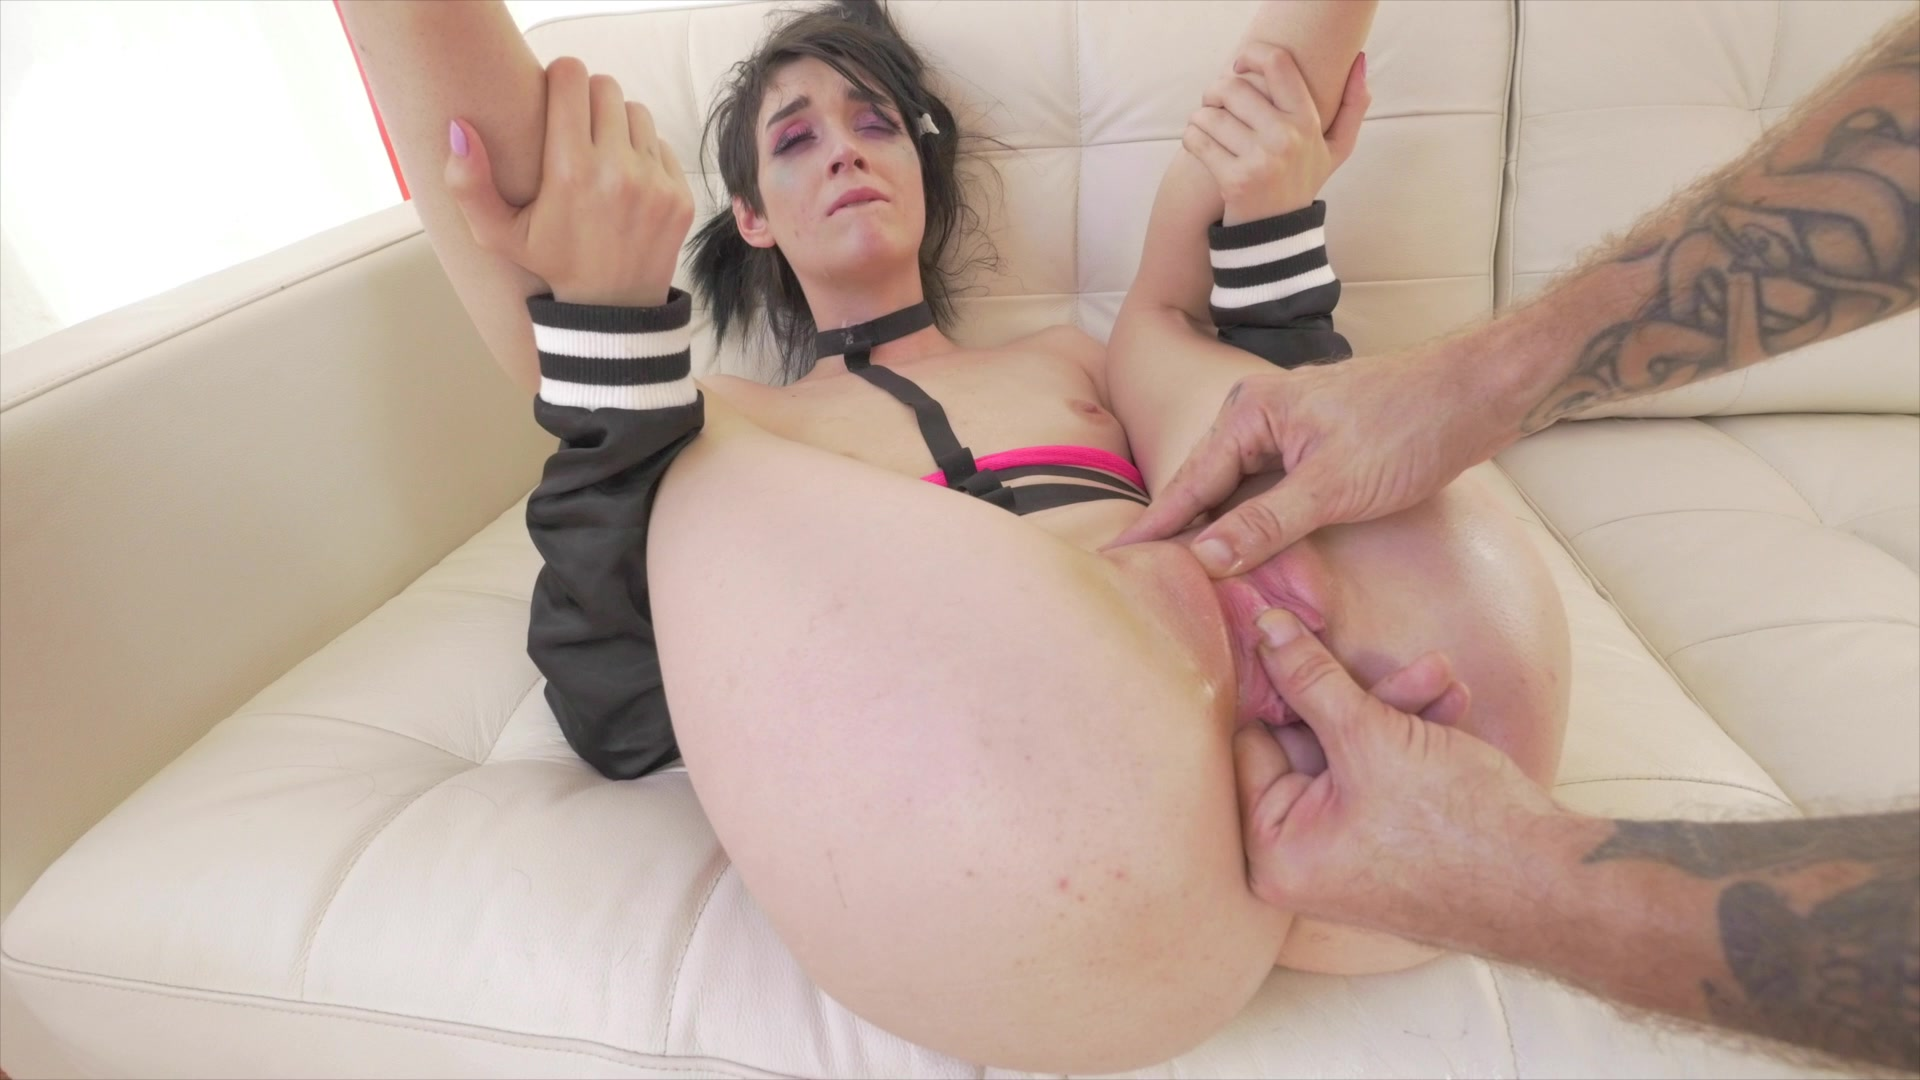 Free Webcam Sex Without Signup